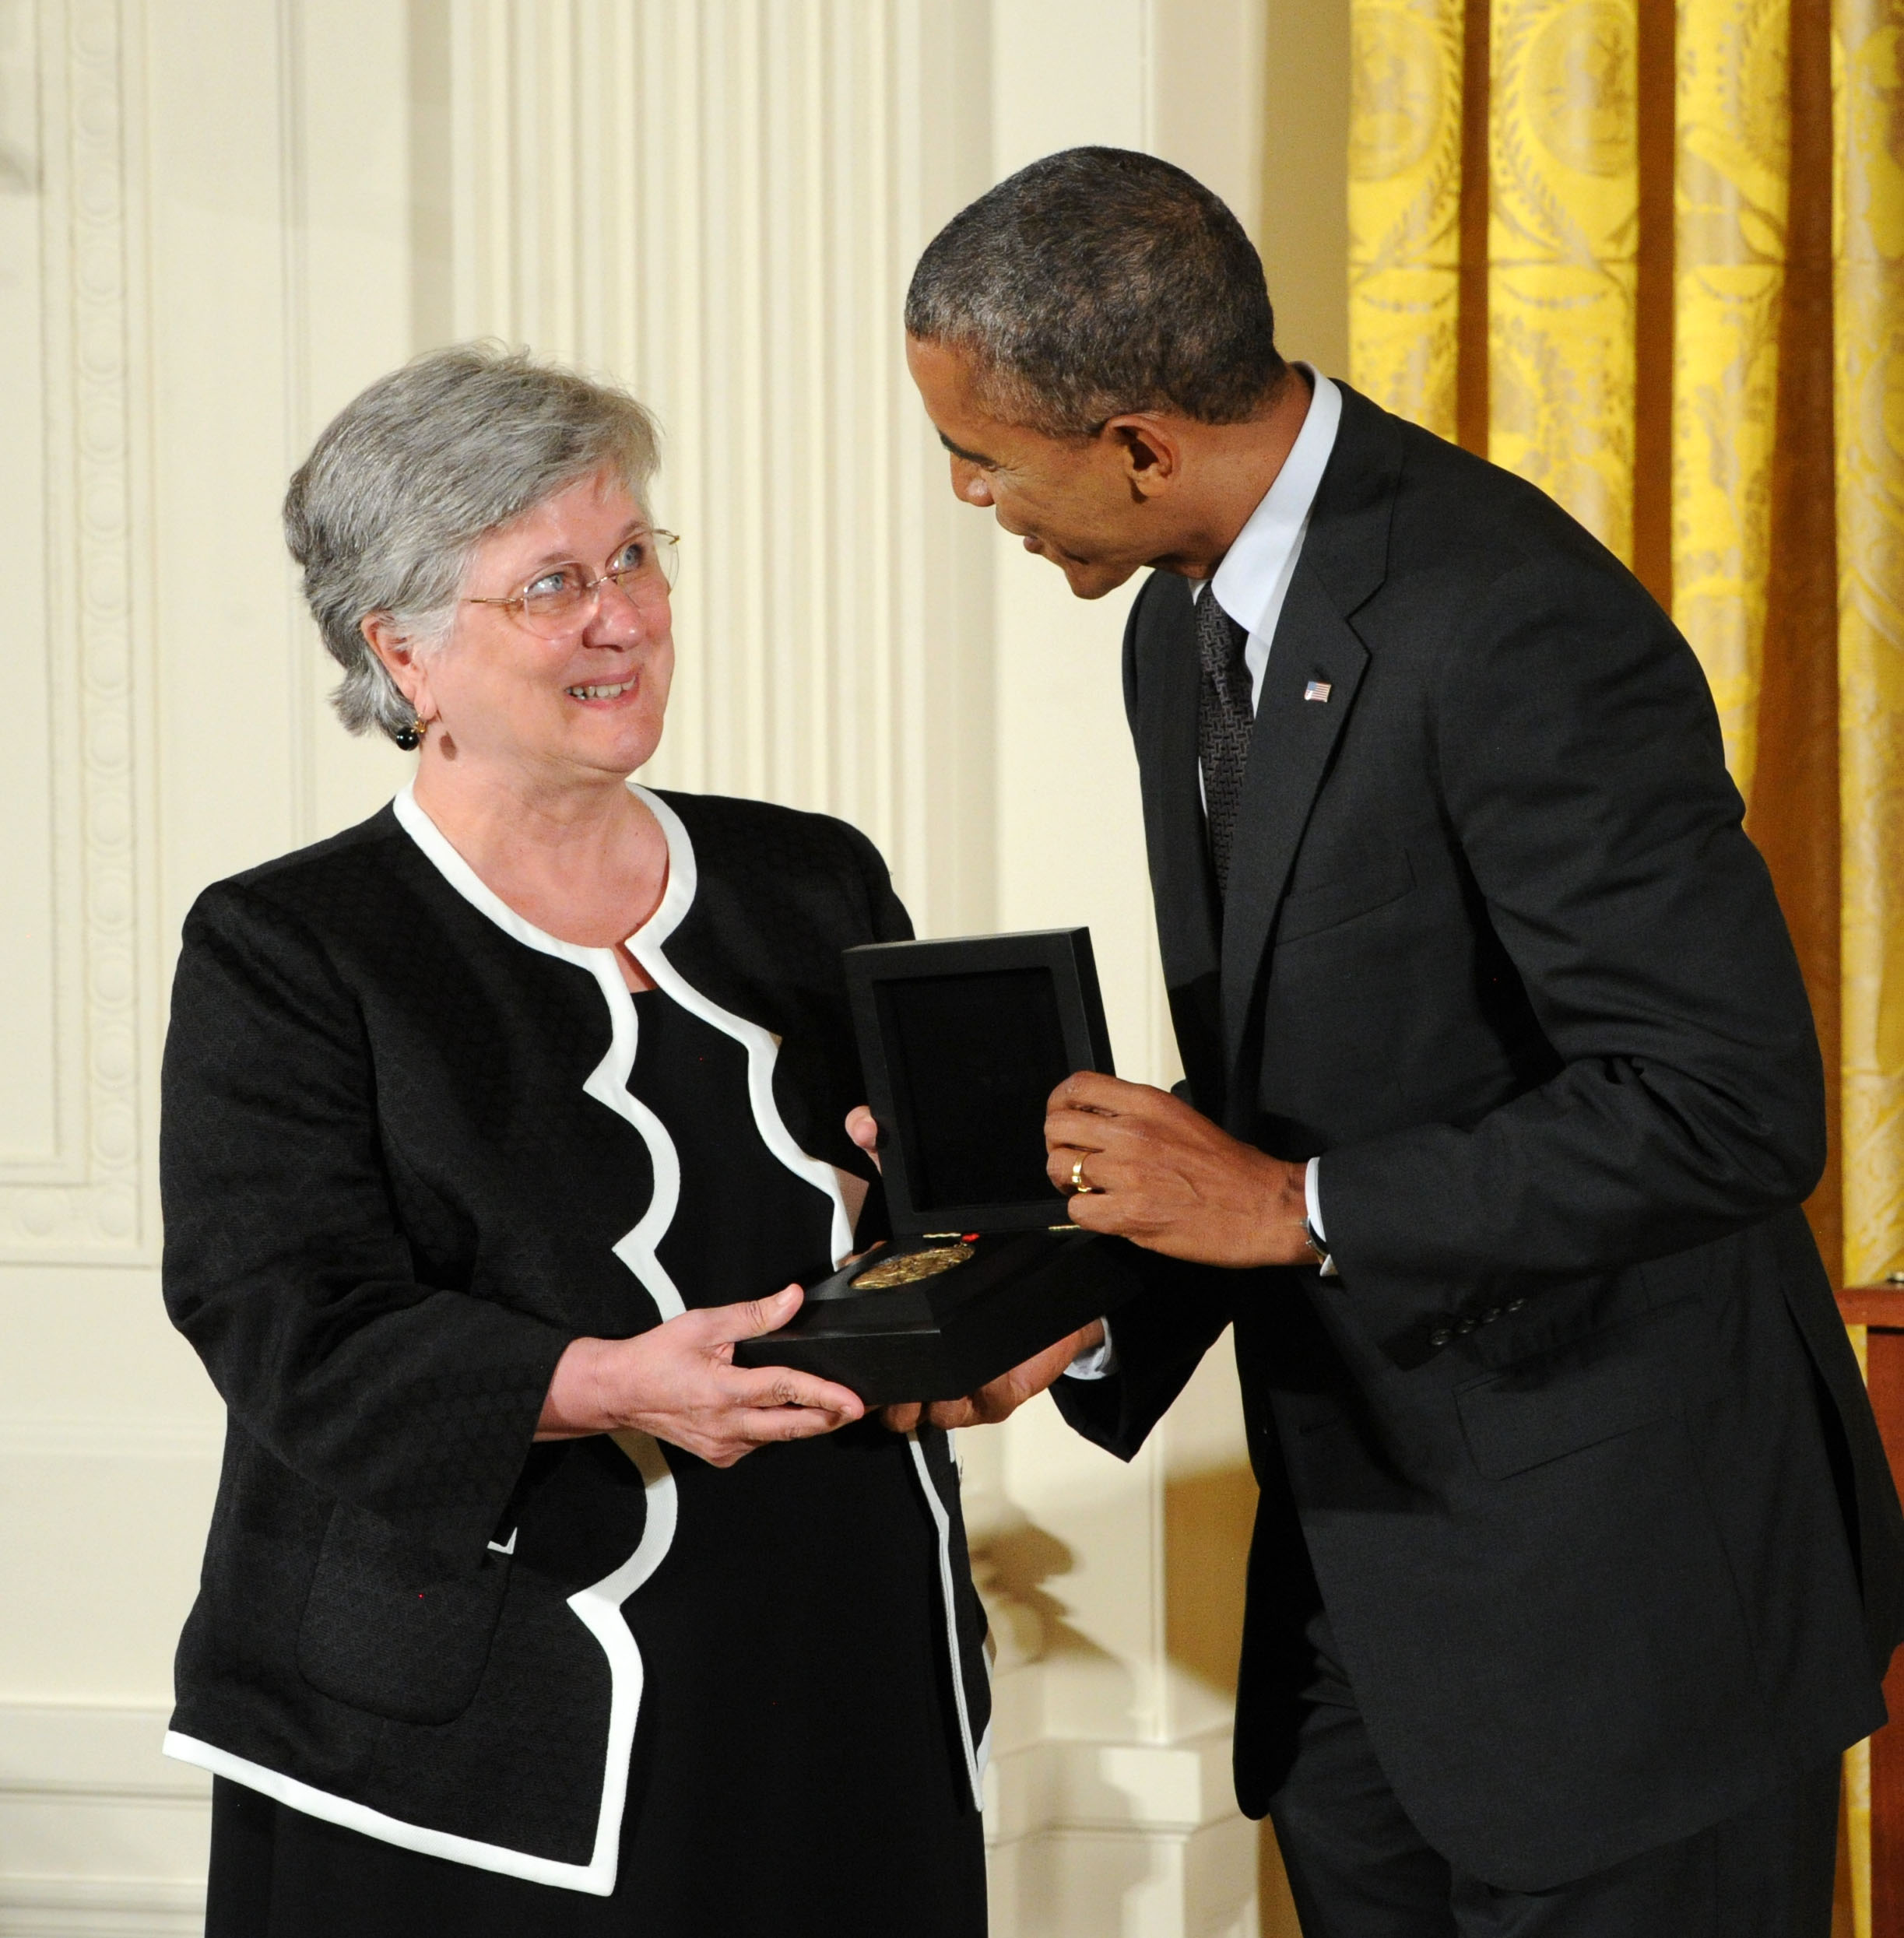 Ellen Dunlap and President Barack Obama